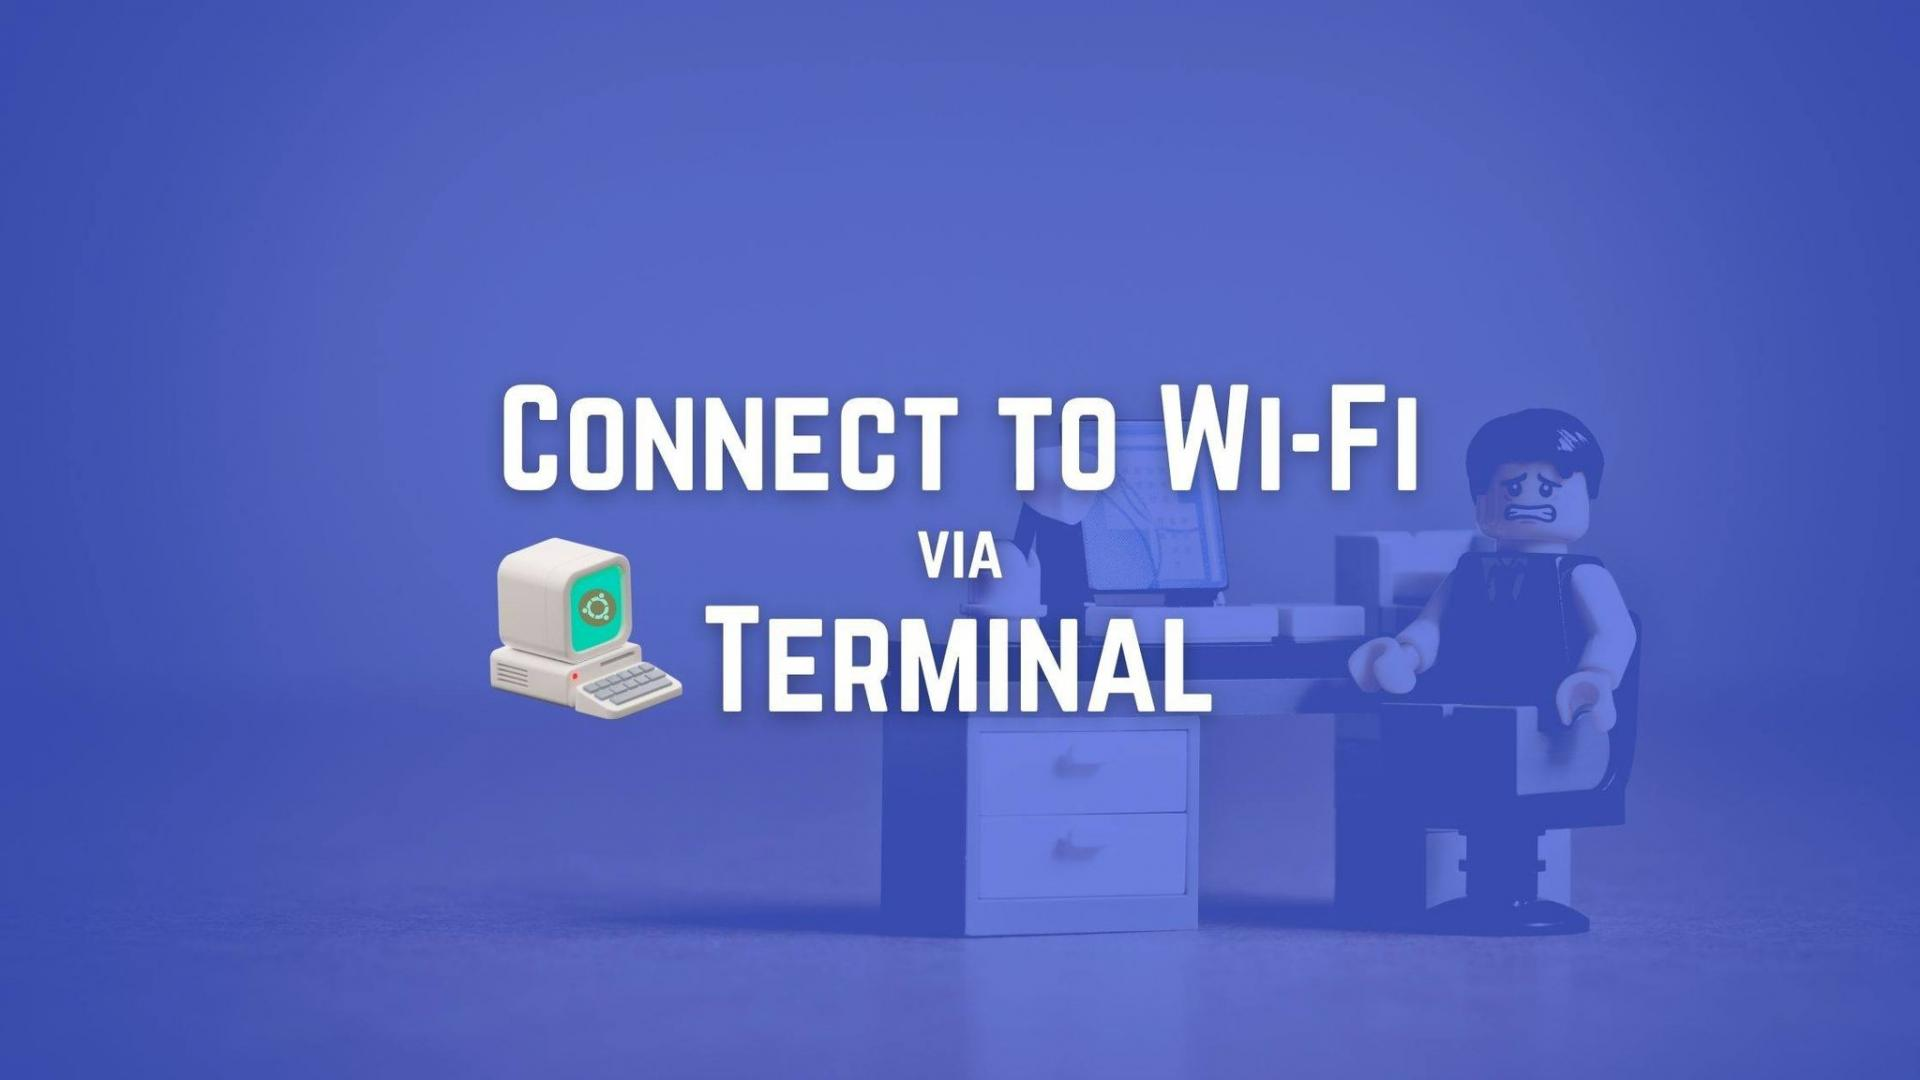 How to connect to Wi-Fi on Ubuntu via the terminal using nmcli